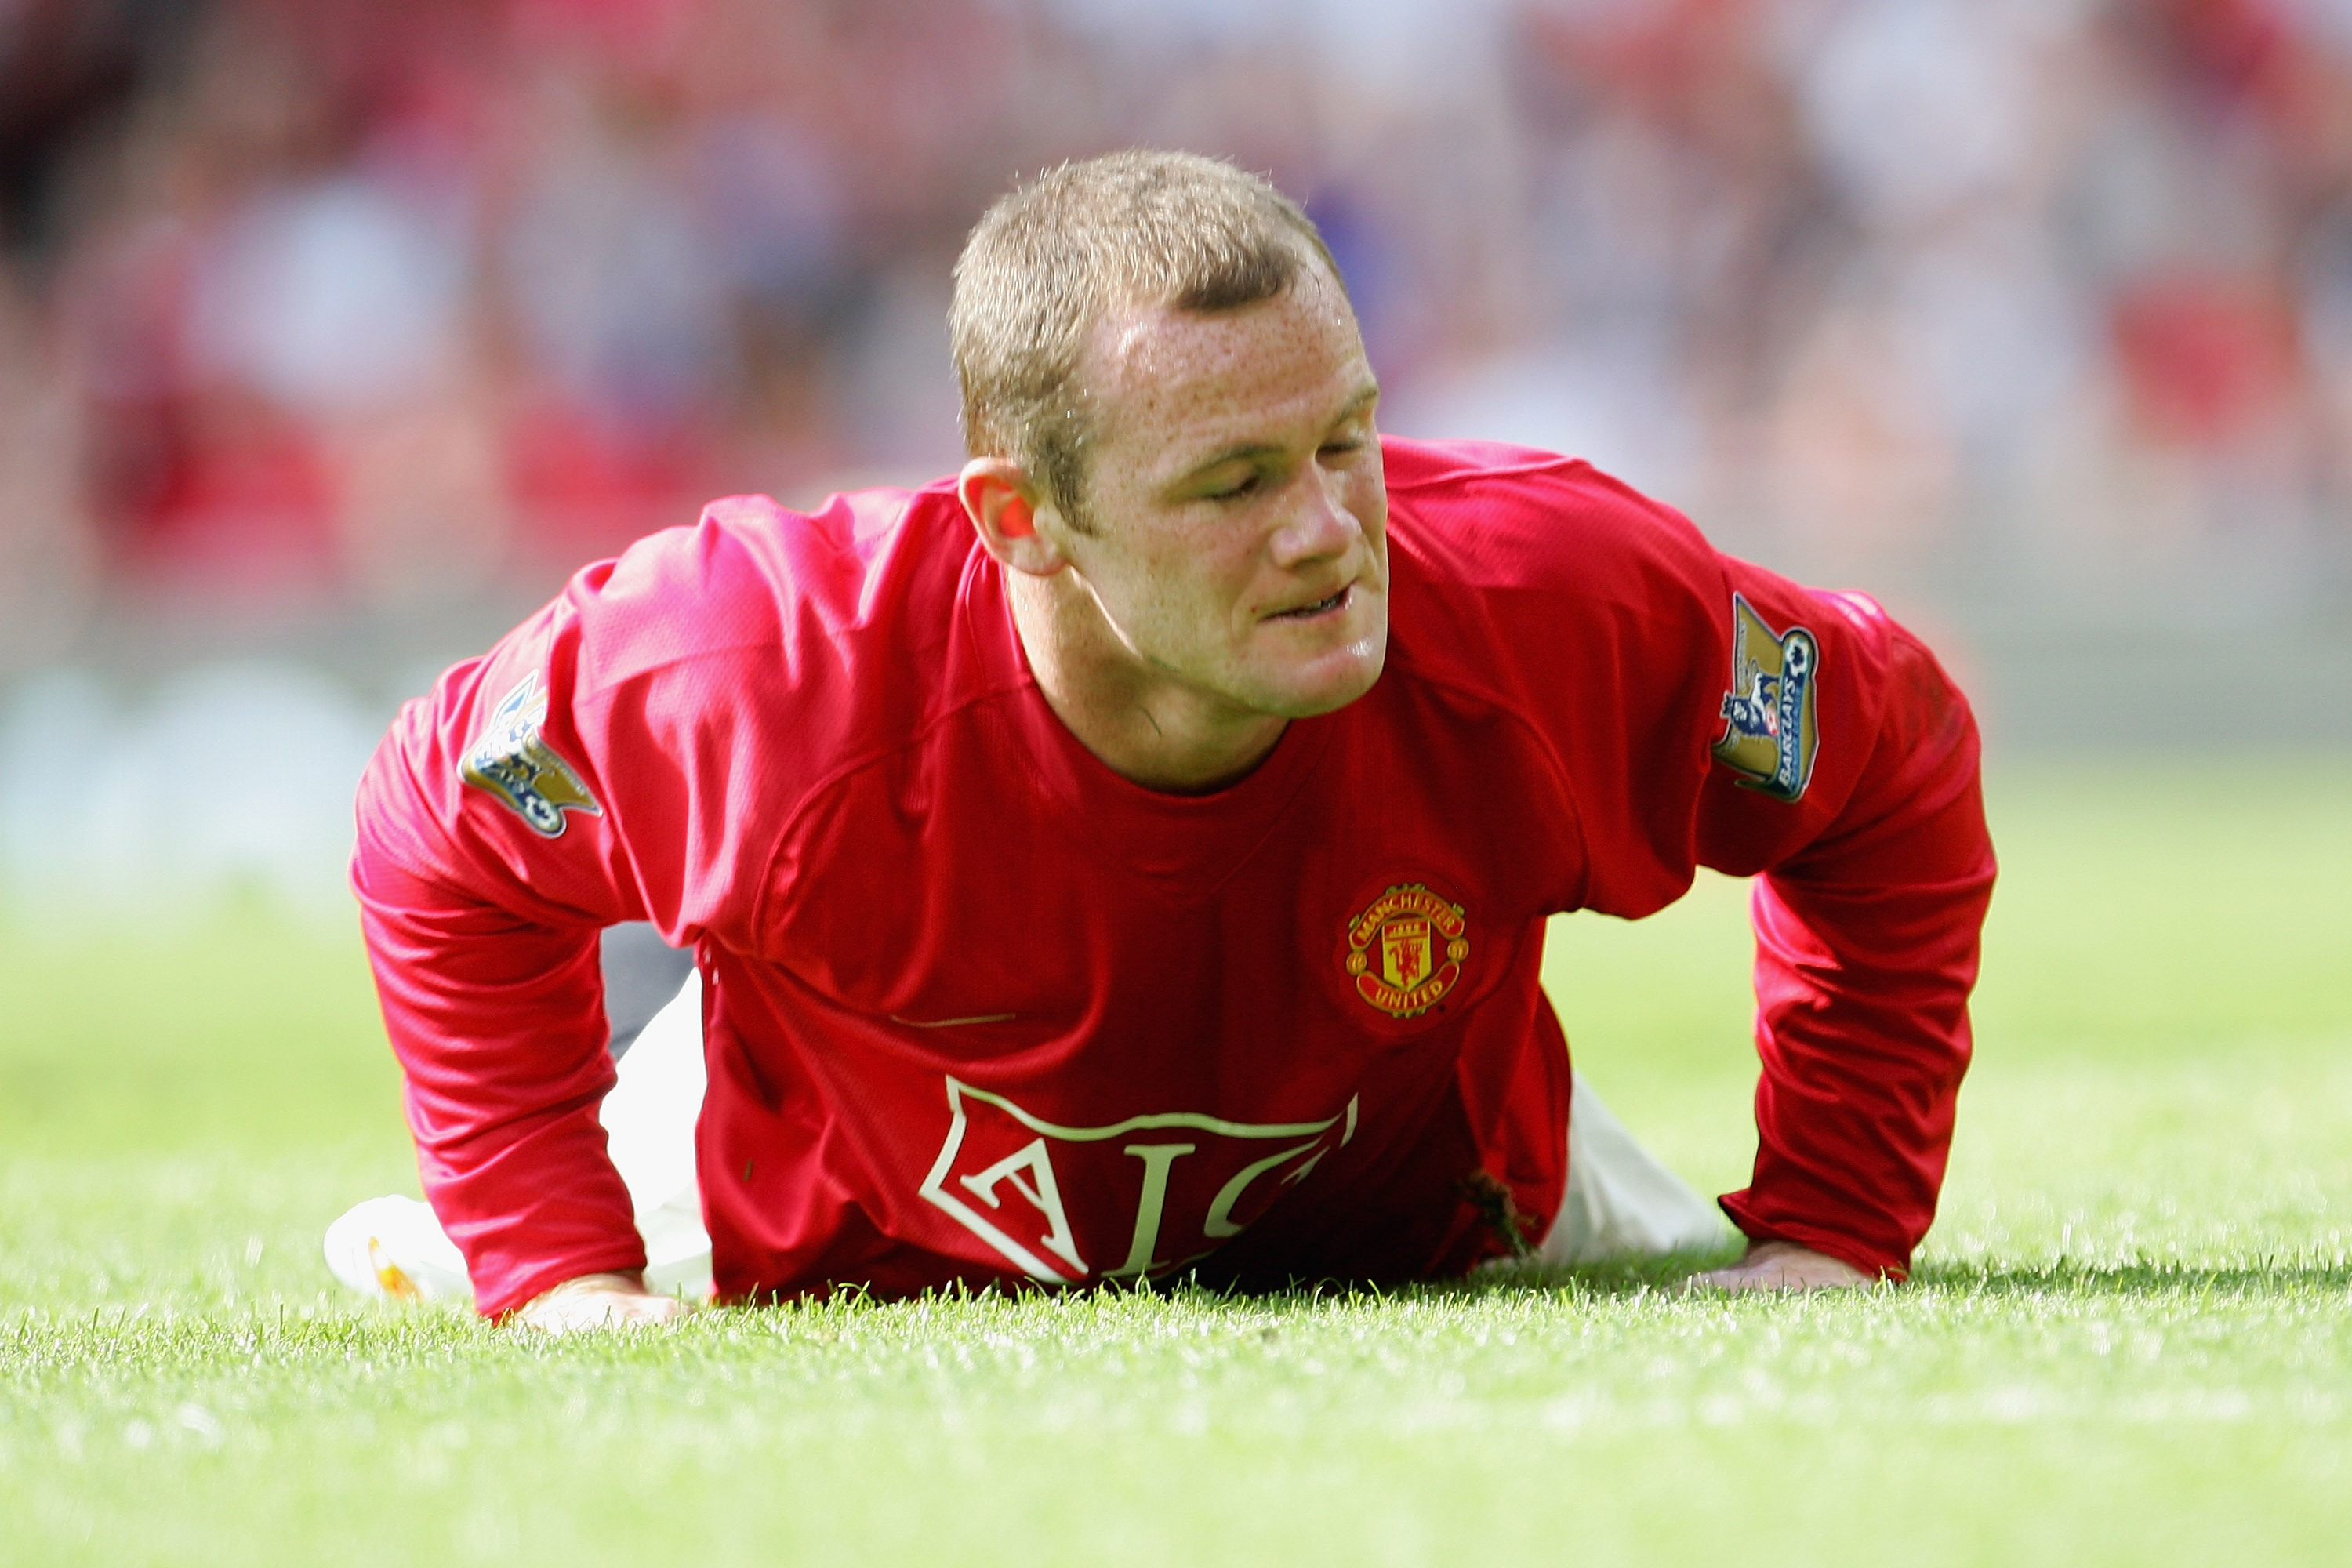 rooney_wallpaper.jpg